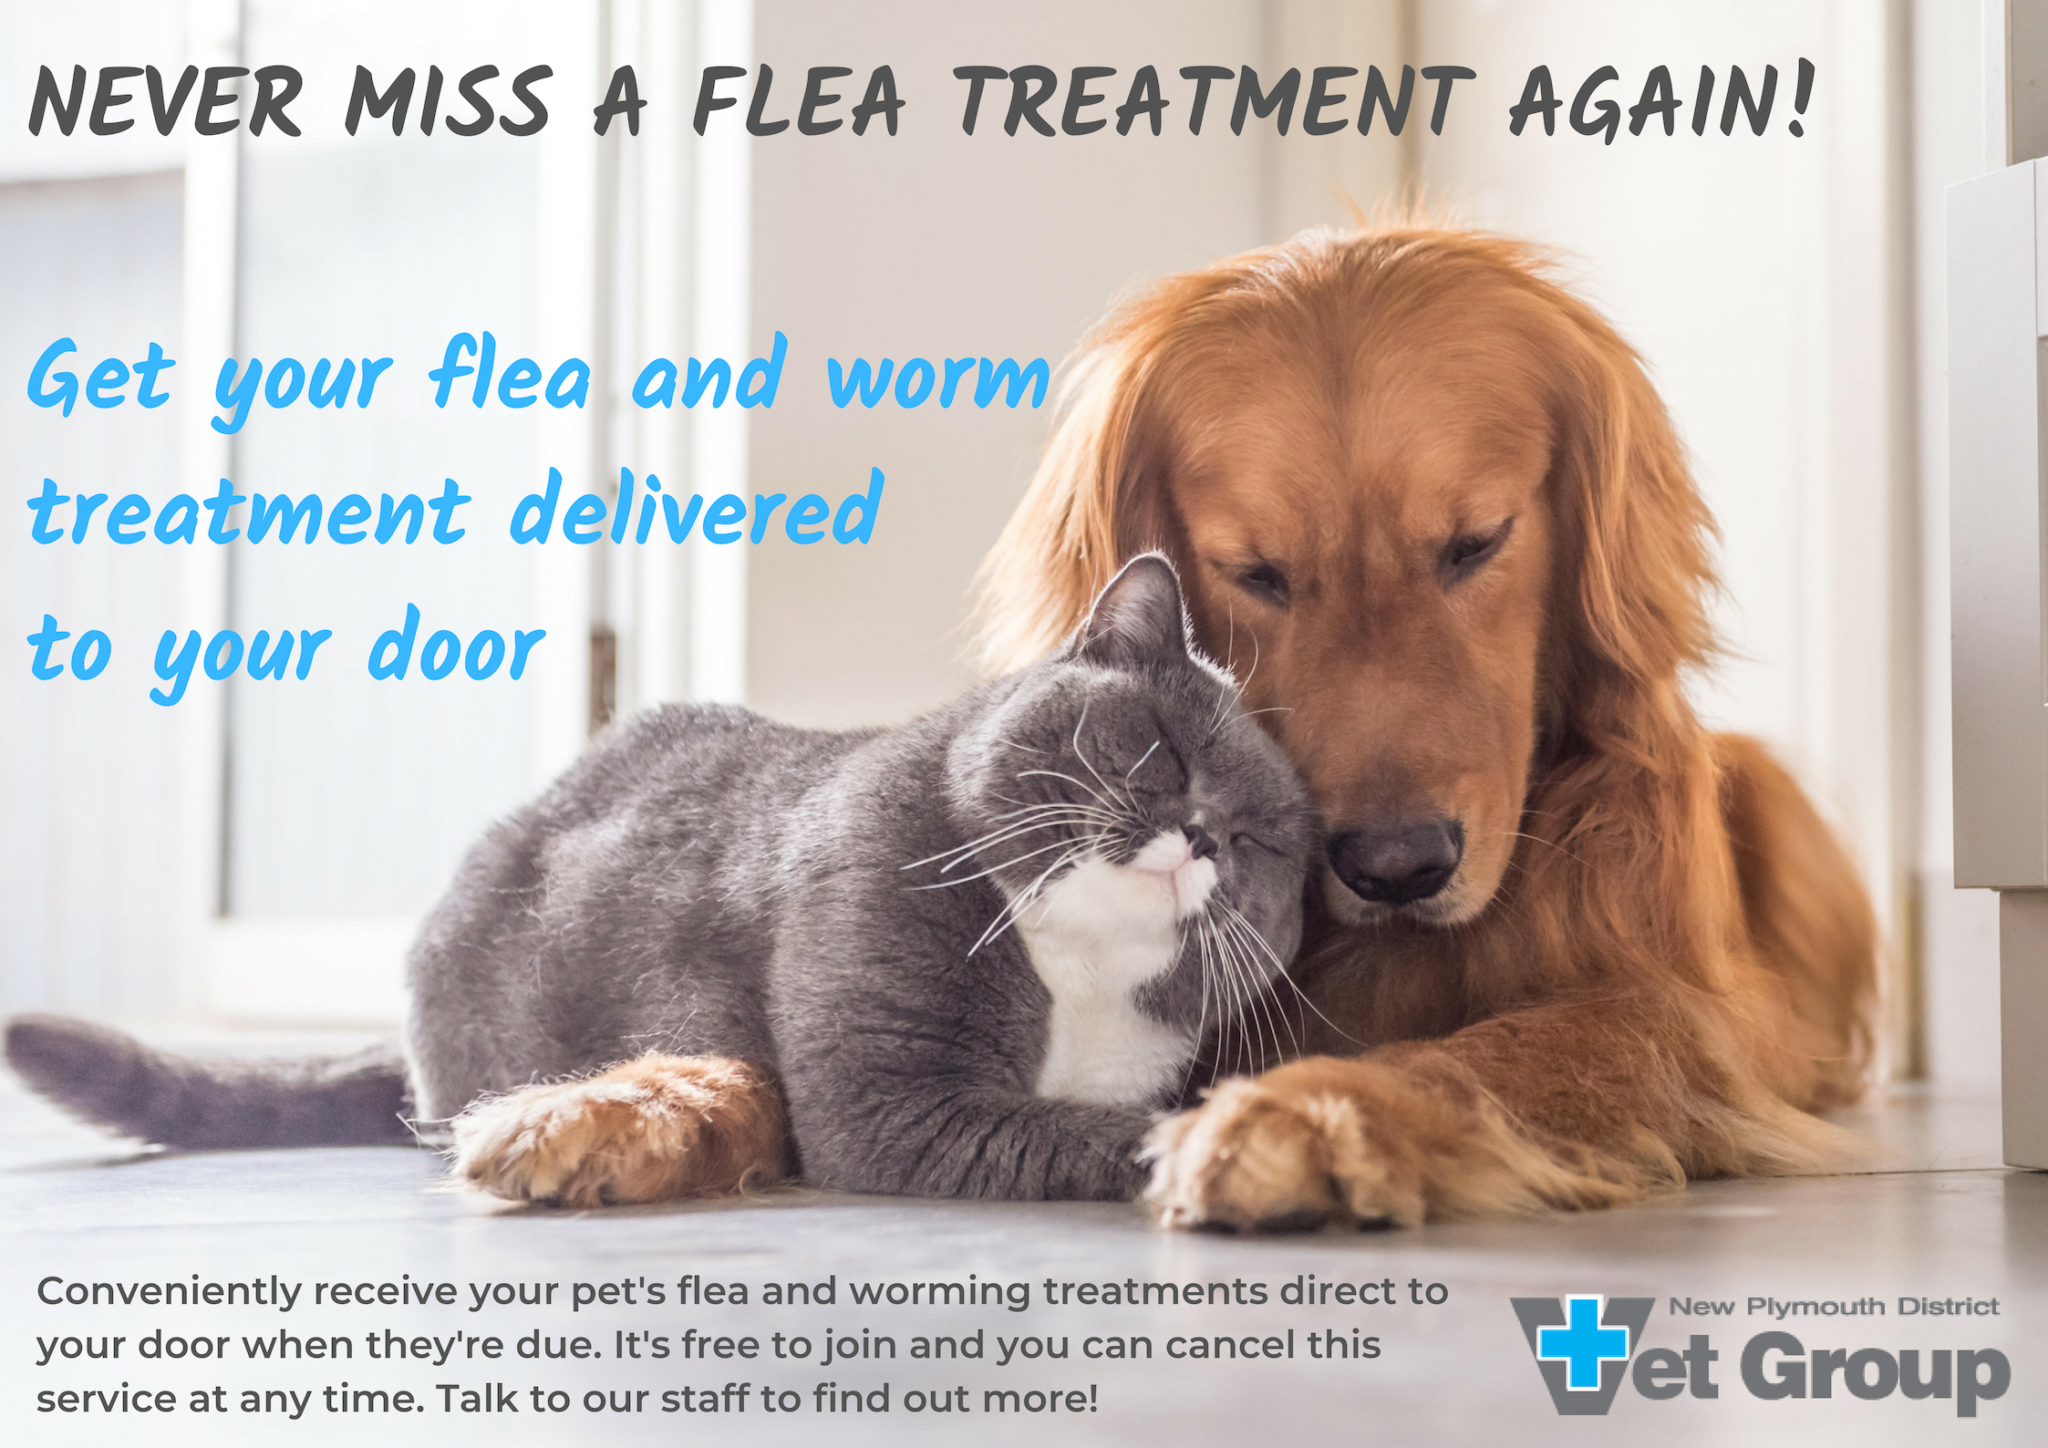 Never Miss A Flea Treatment Again – Get Your Treatment Delivered!